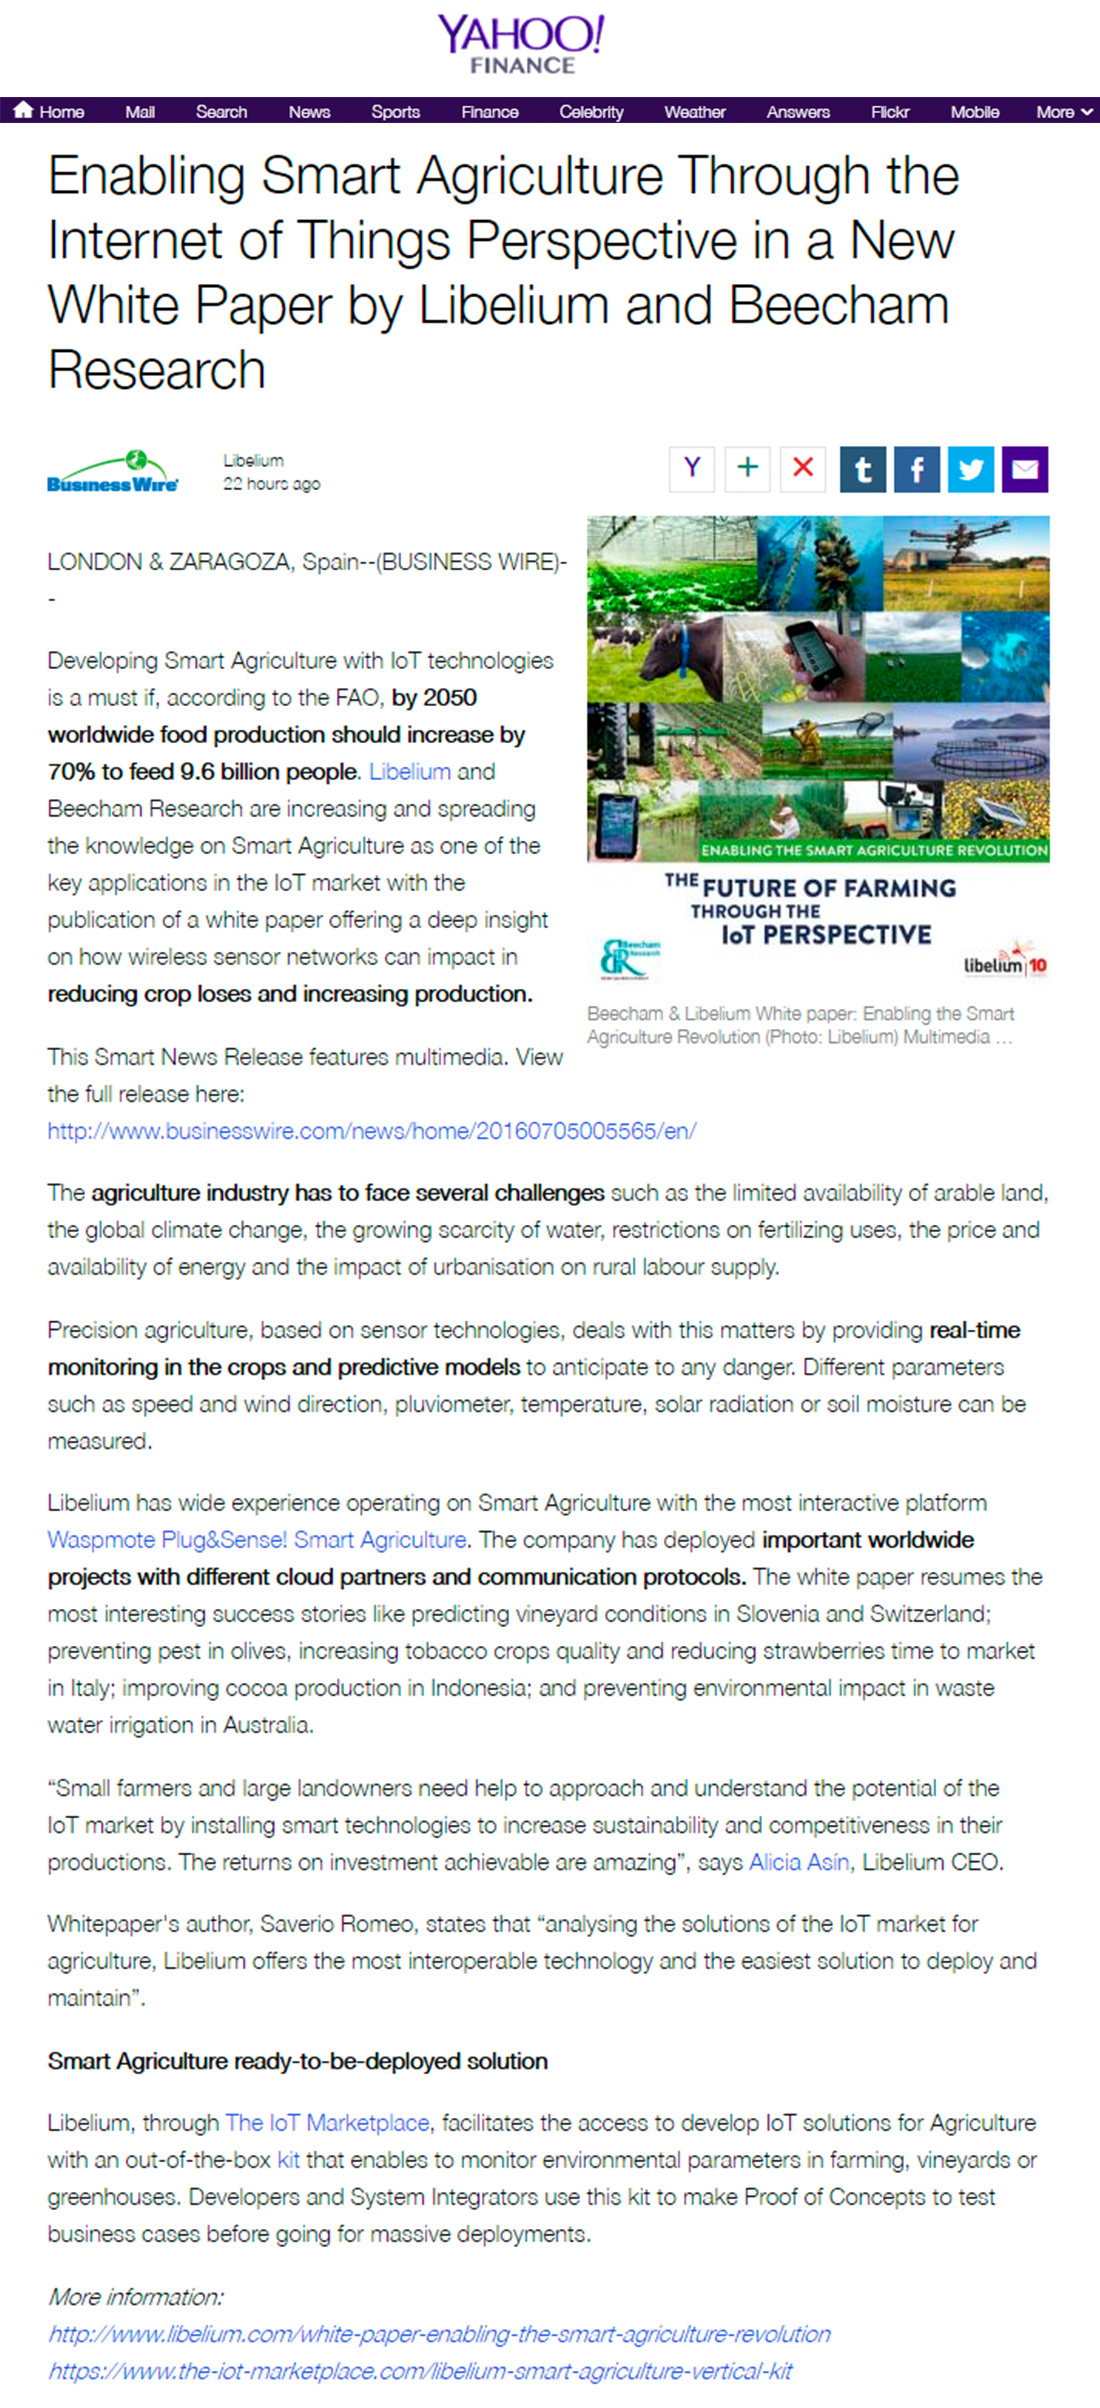 Yahoo! Finance – White Paper Enabling Smart Agriculture Revolution